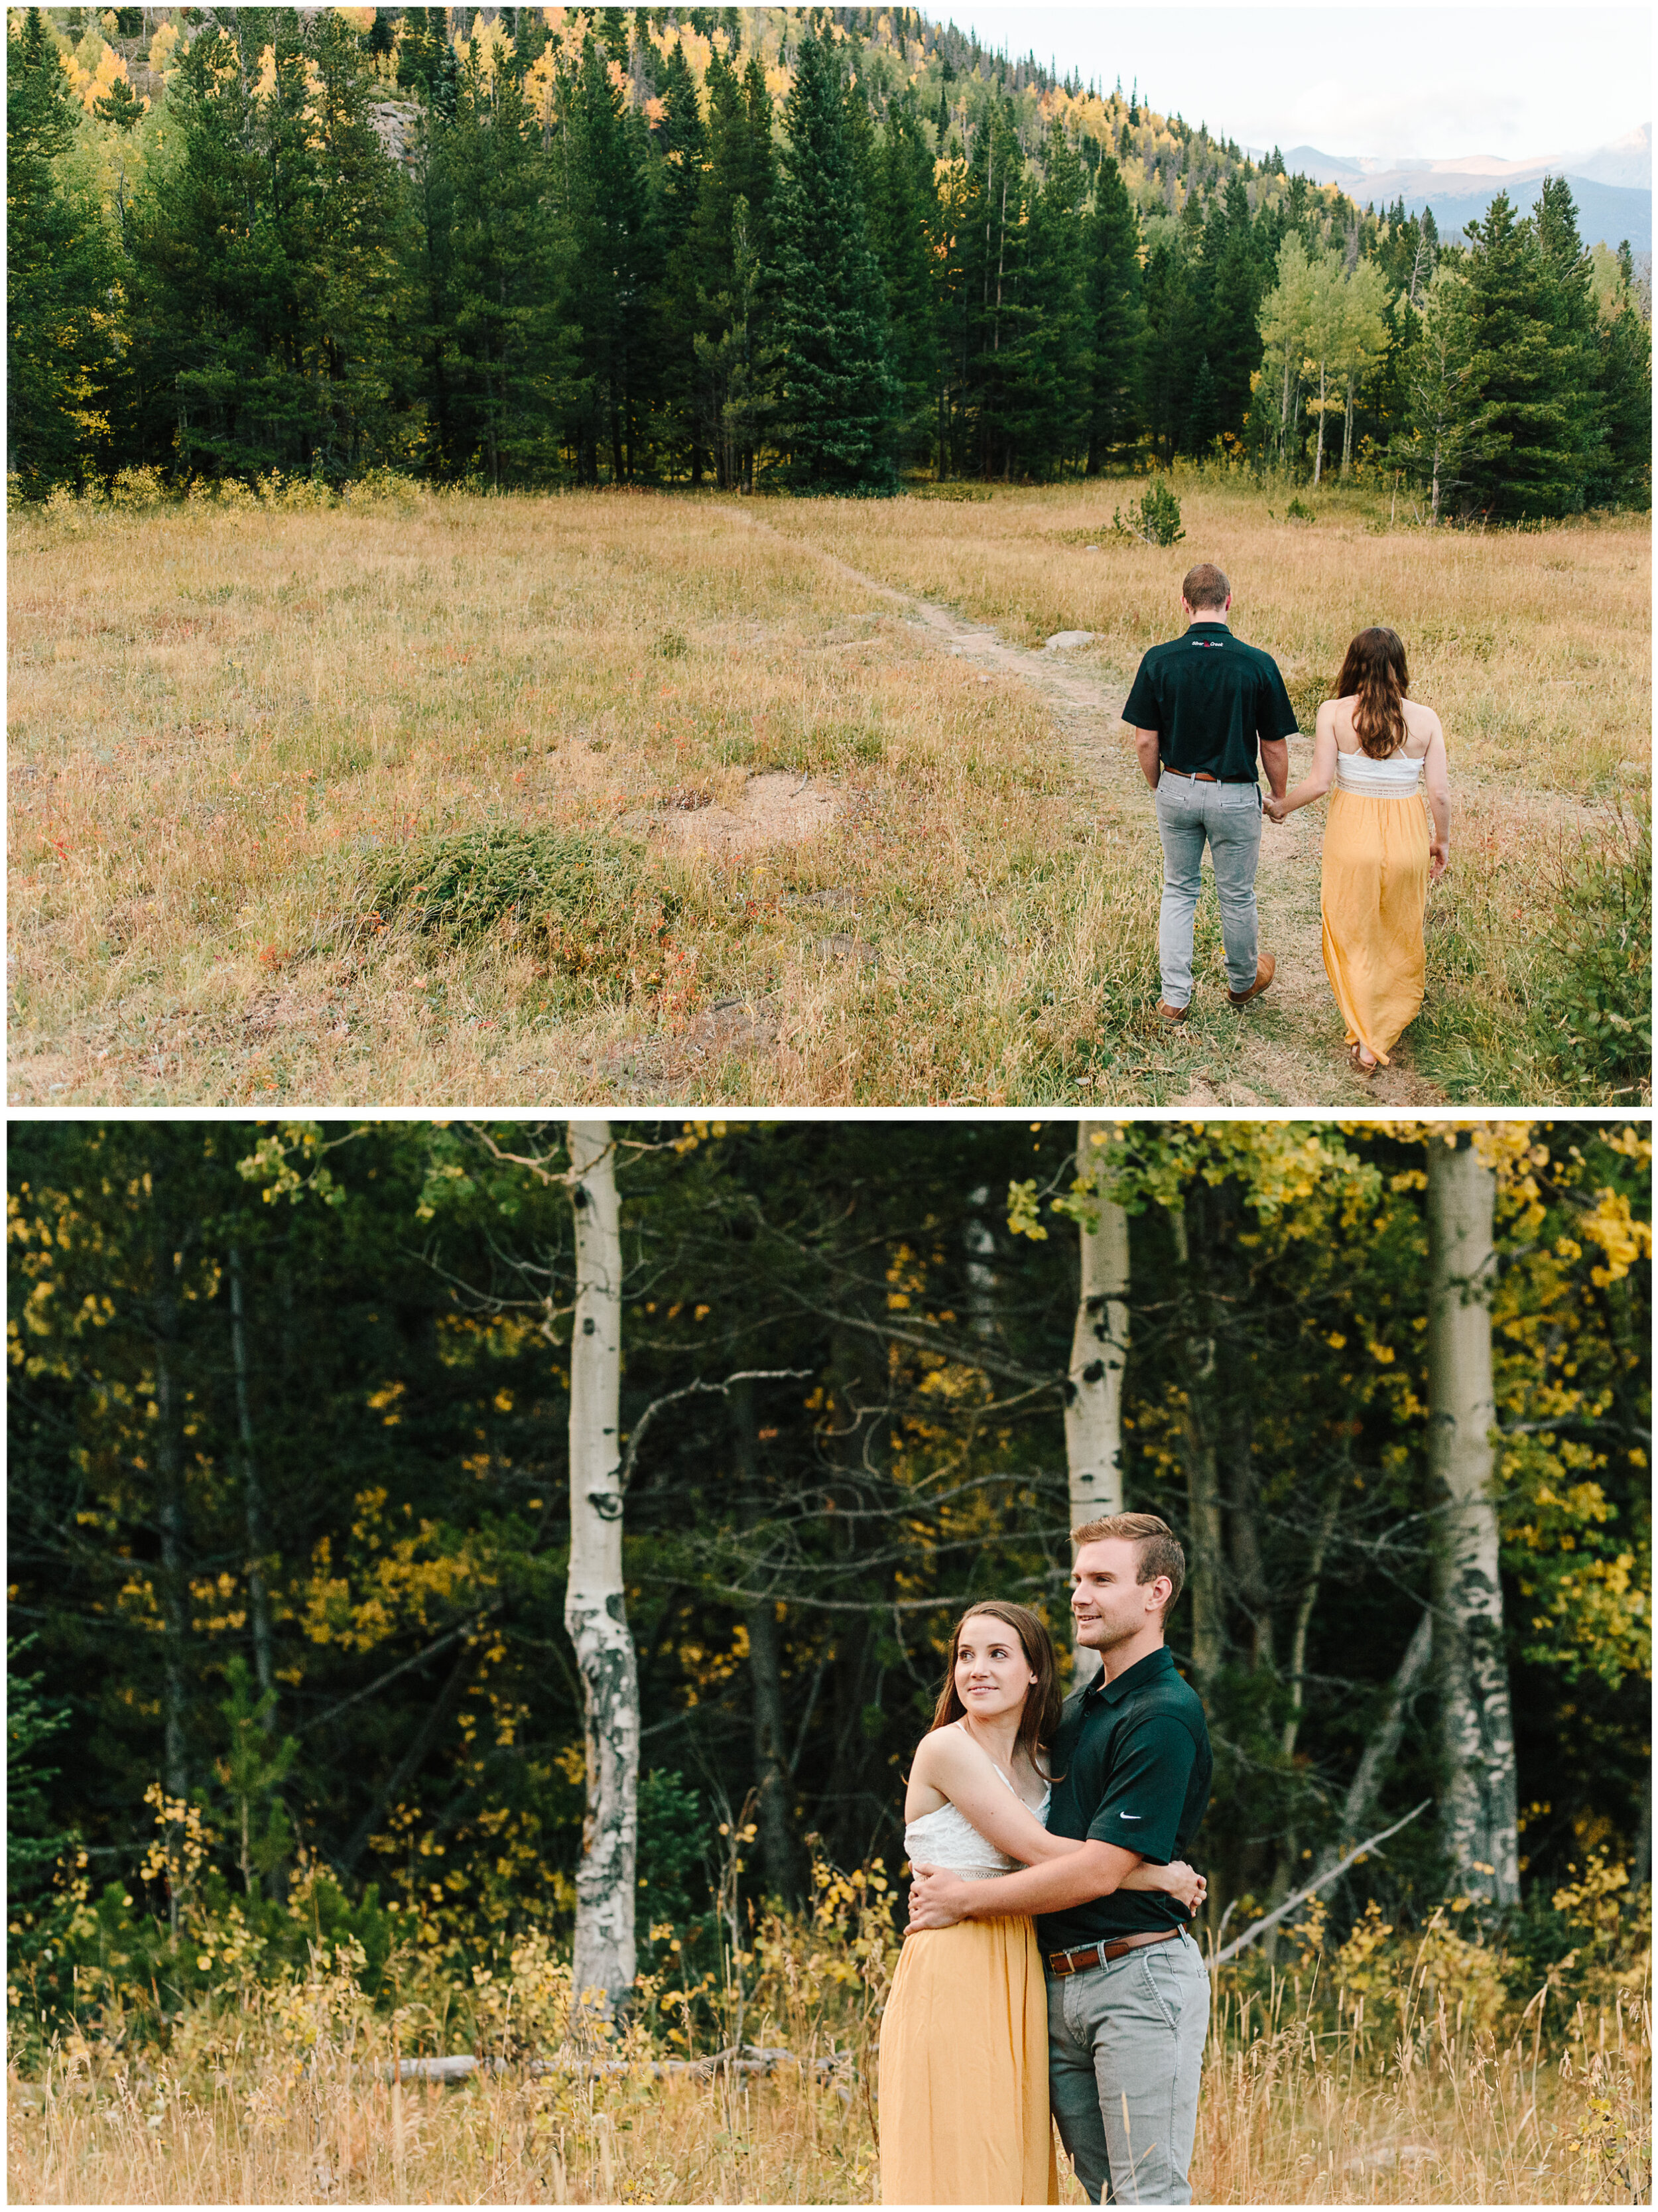 rocky_mountain_national_park_engagement_18.jpg